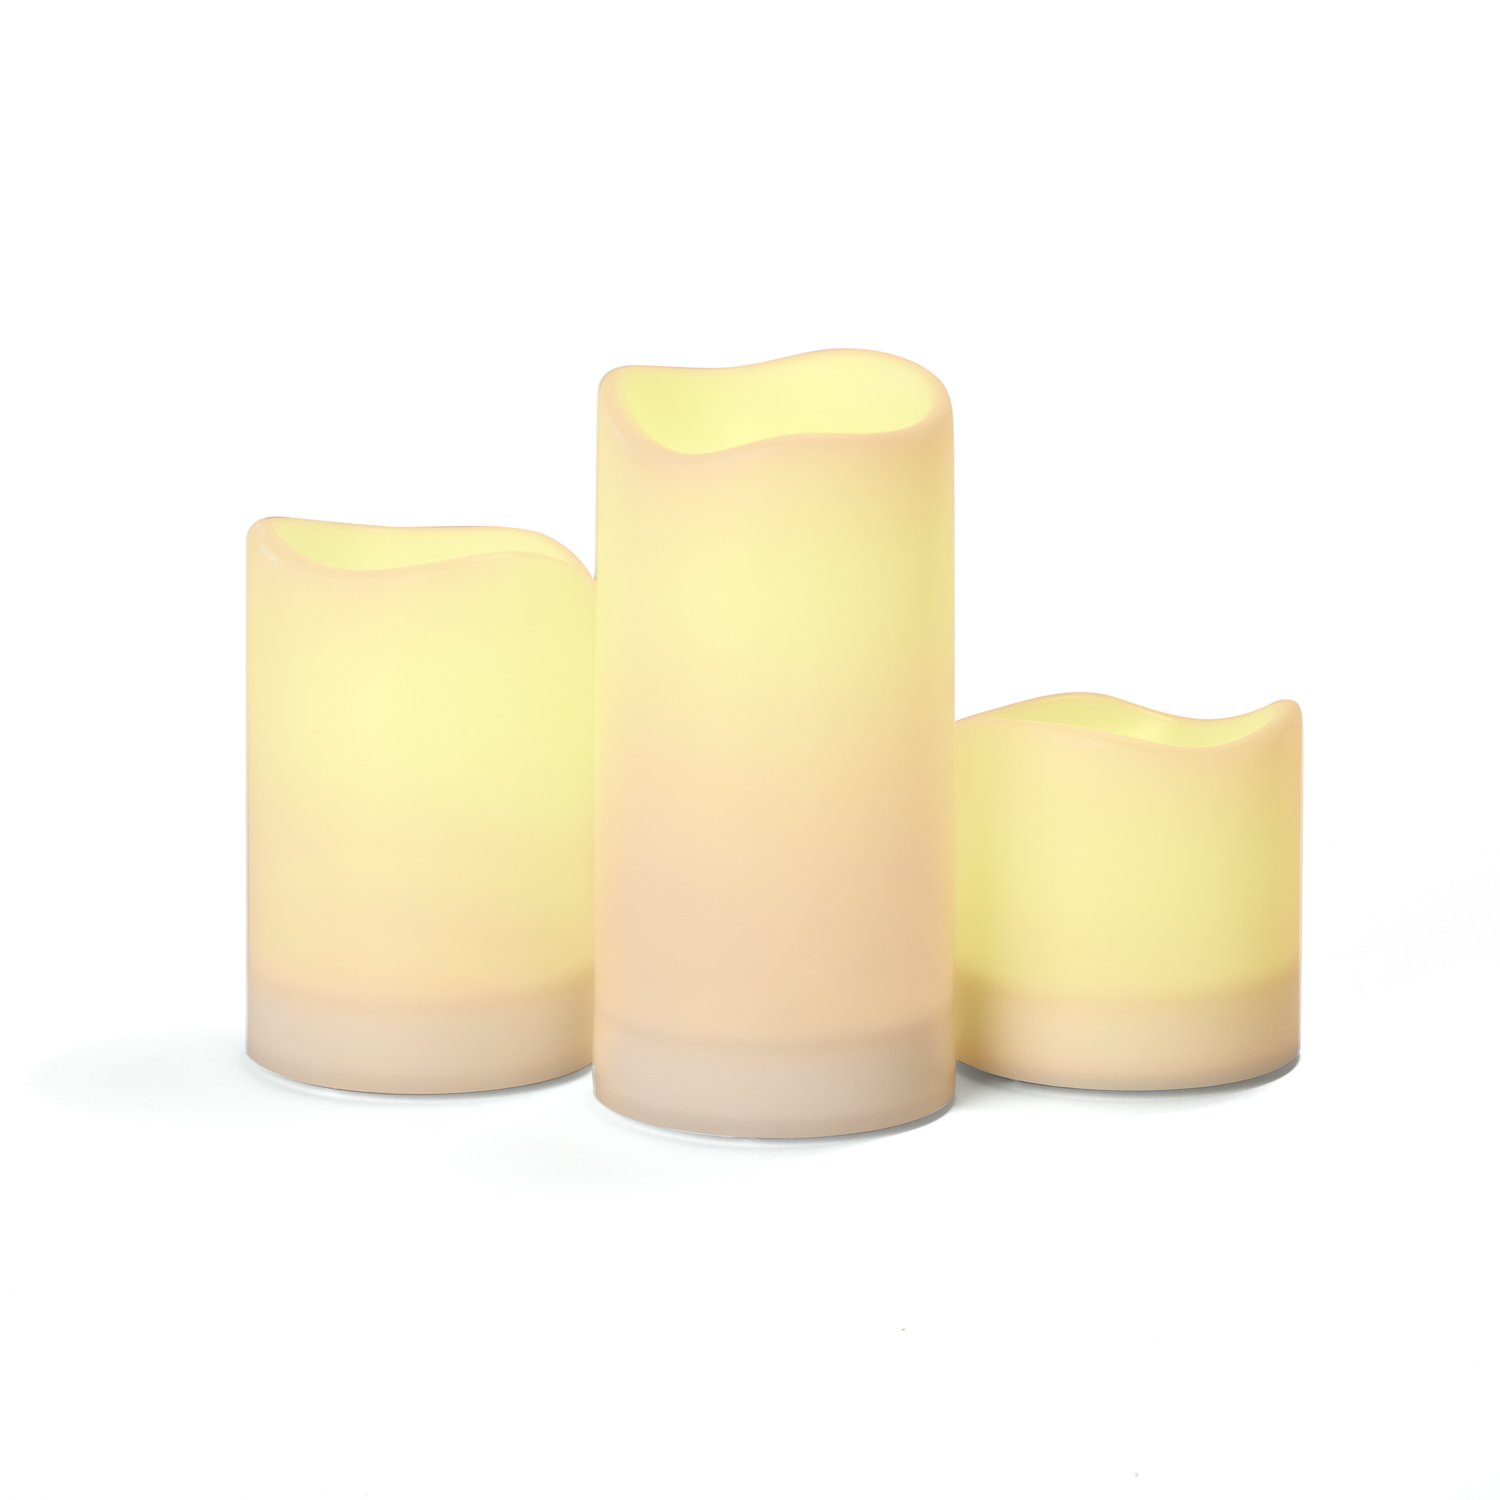 Ivory Solar Flameless Pillar Candles, Rechargeable, Warm White LEDs, Outdoor Use, Batteries Included - Set of 3